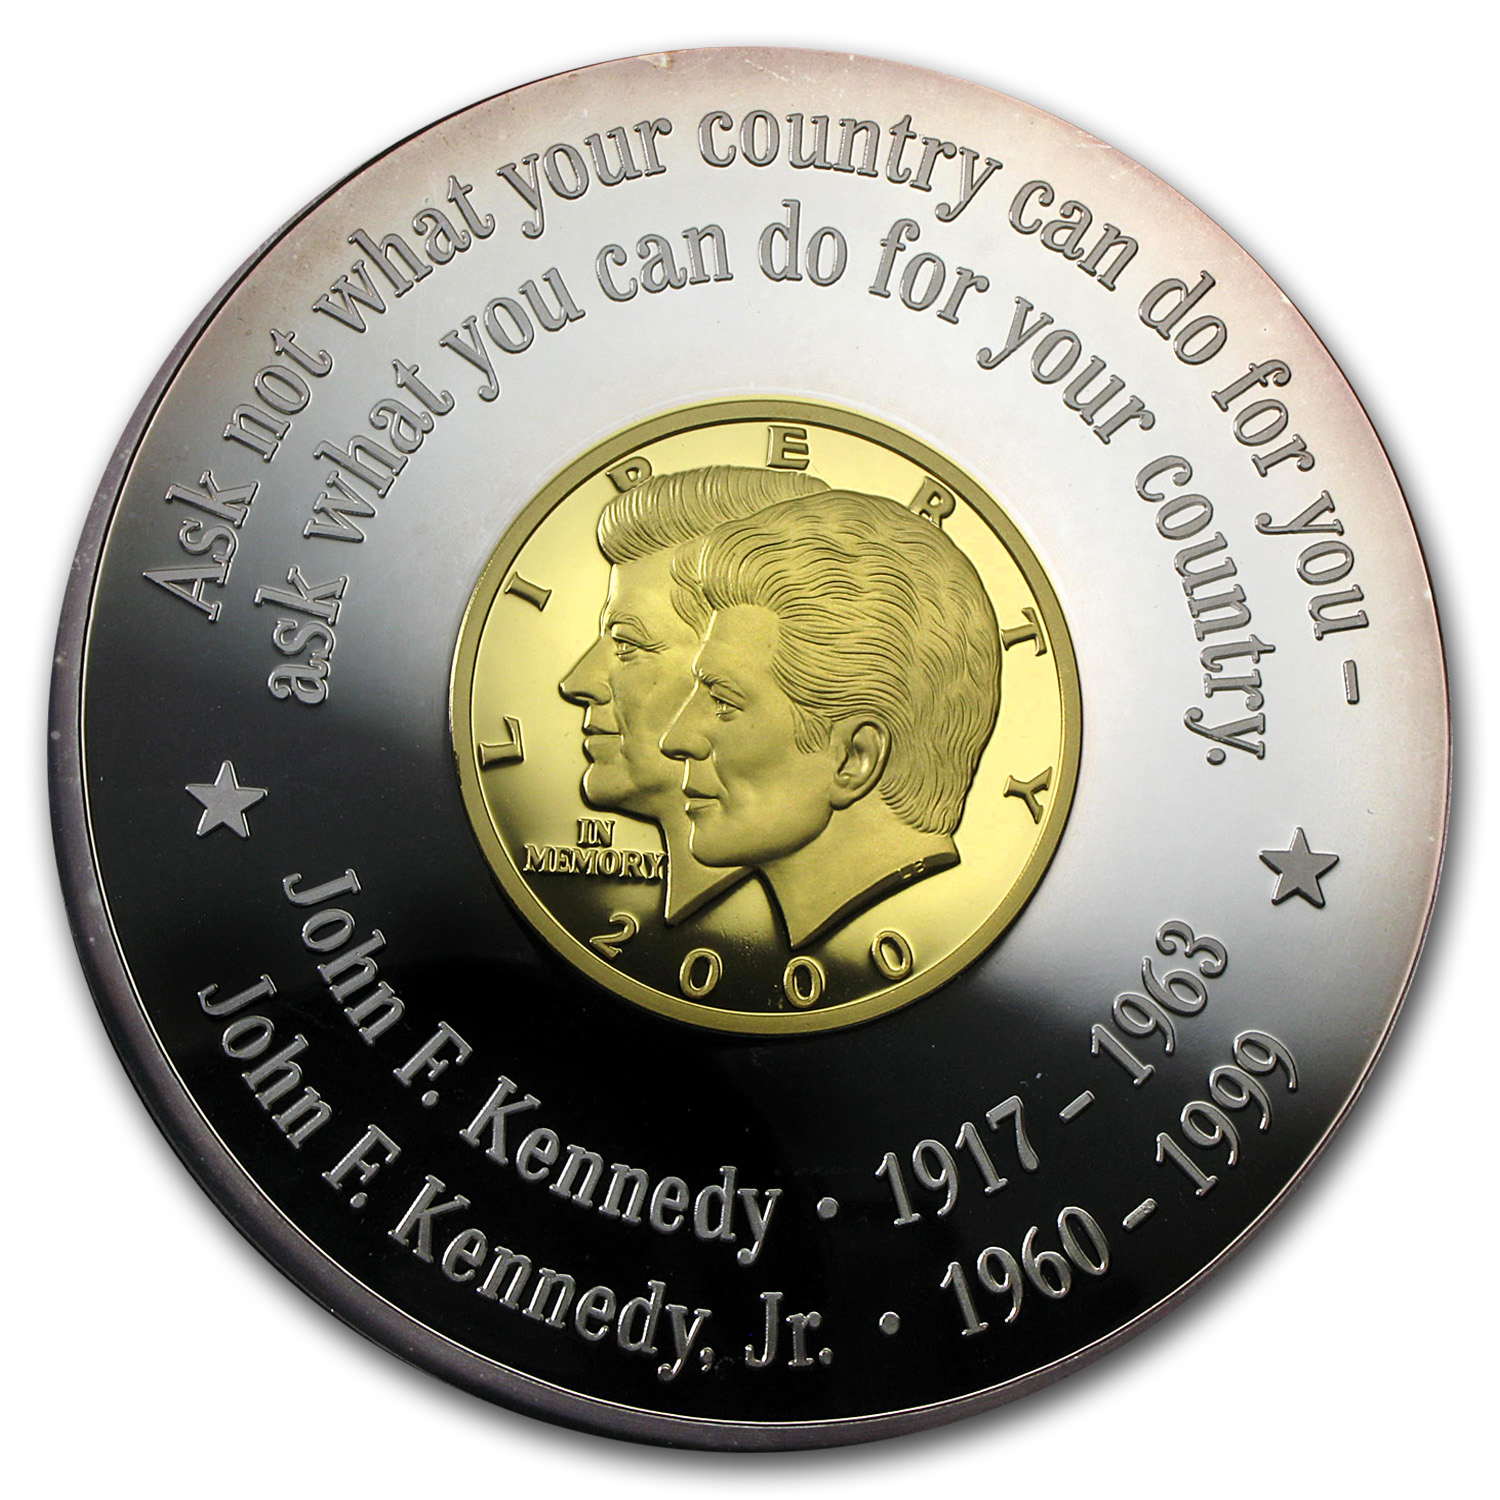 1999 Liberia 1/2 oz Proof Gold/Silver 500 Dollars JFK & JFK Jr